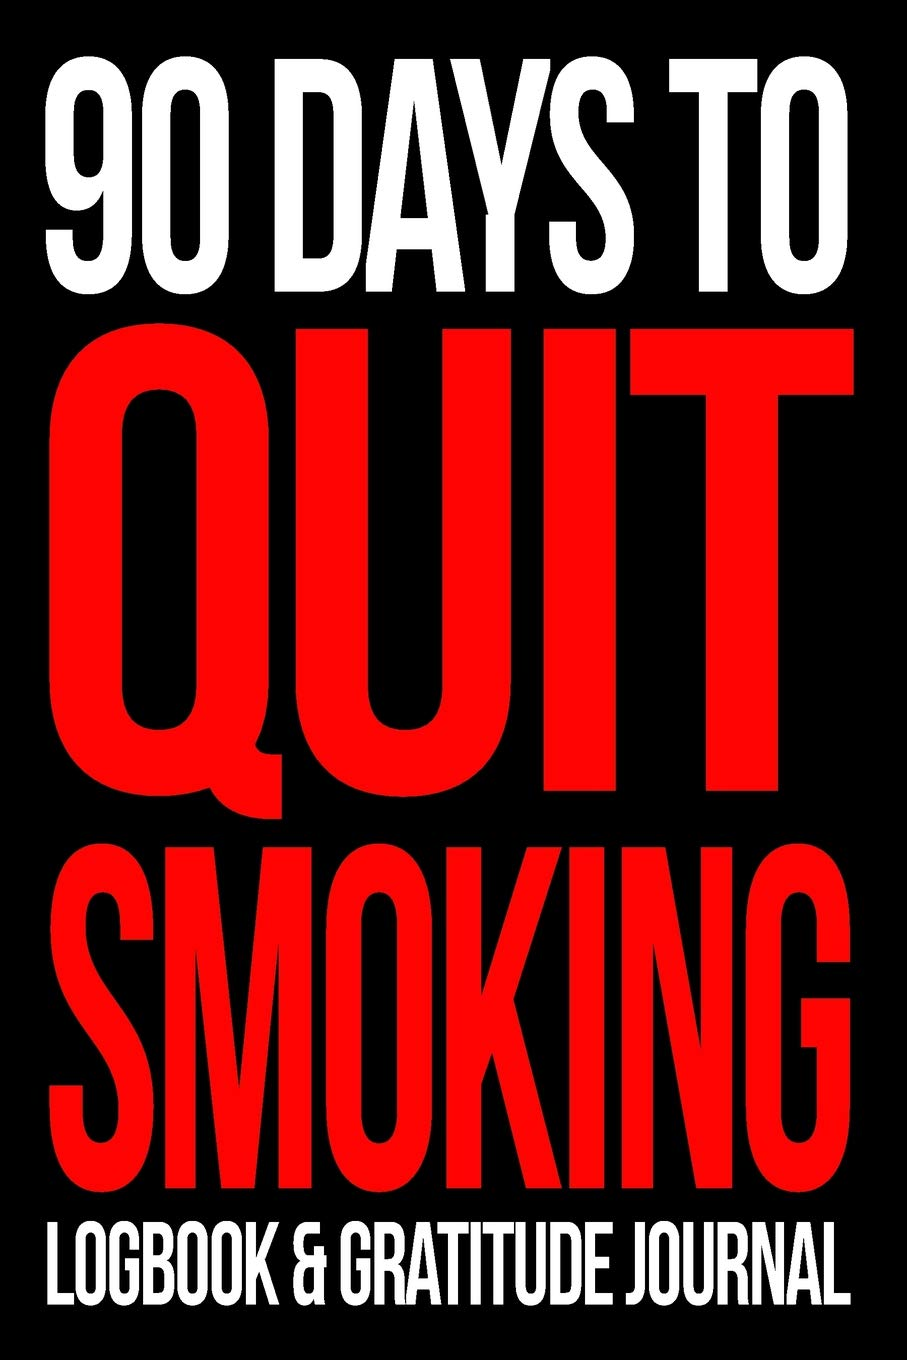 5 Days To Quit Smoking Logbook and Gratitude Journal  Give Up